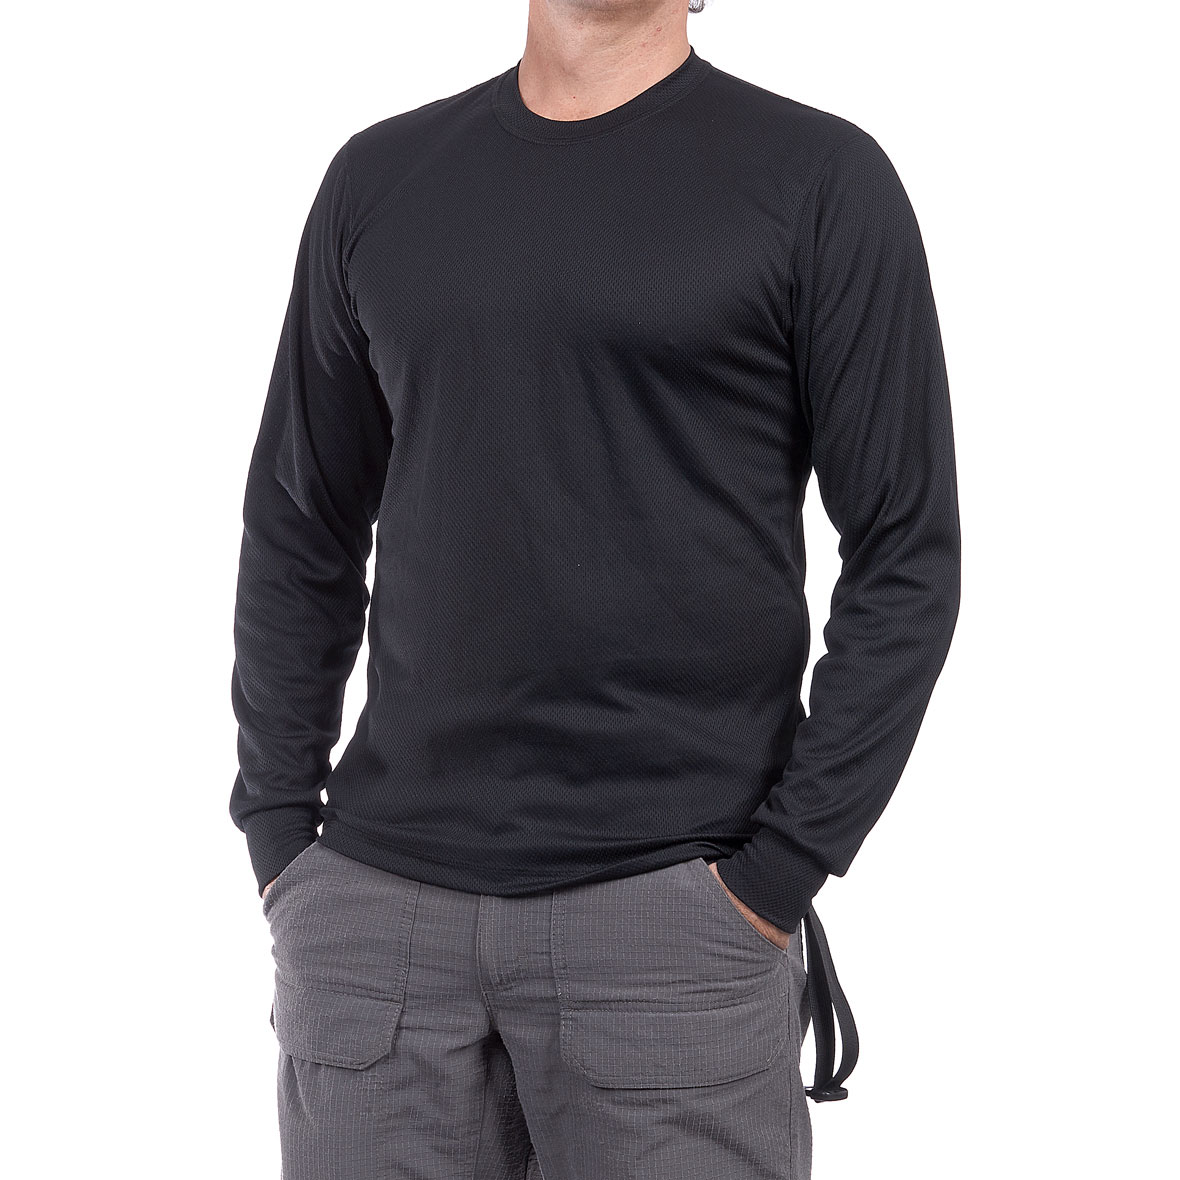 MG 8628 5CS20041010M Camiseta Thermal Negro - Camiseta Thermal